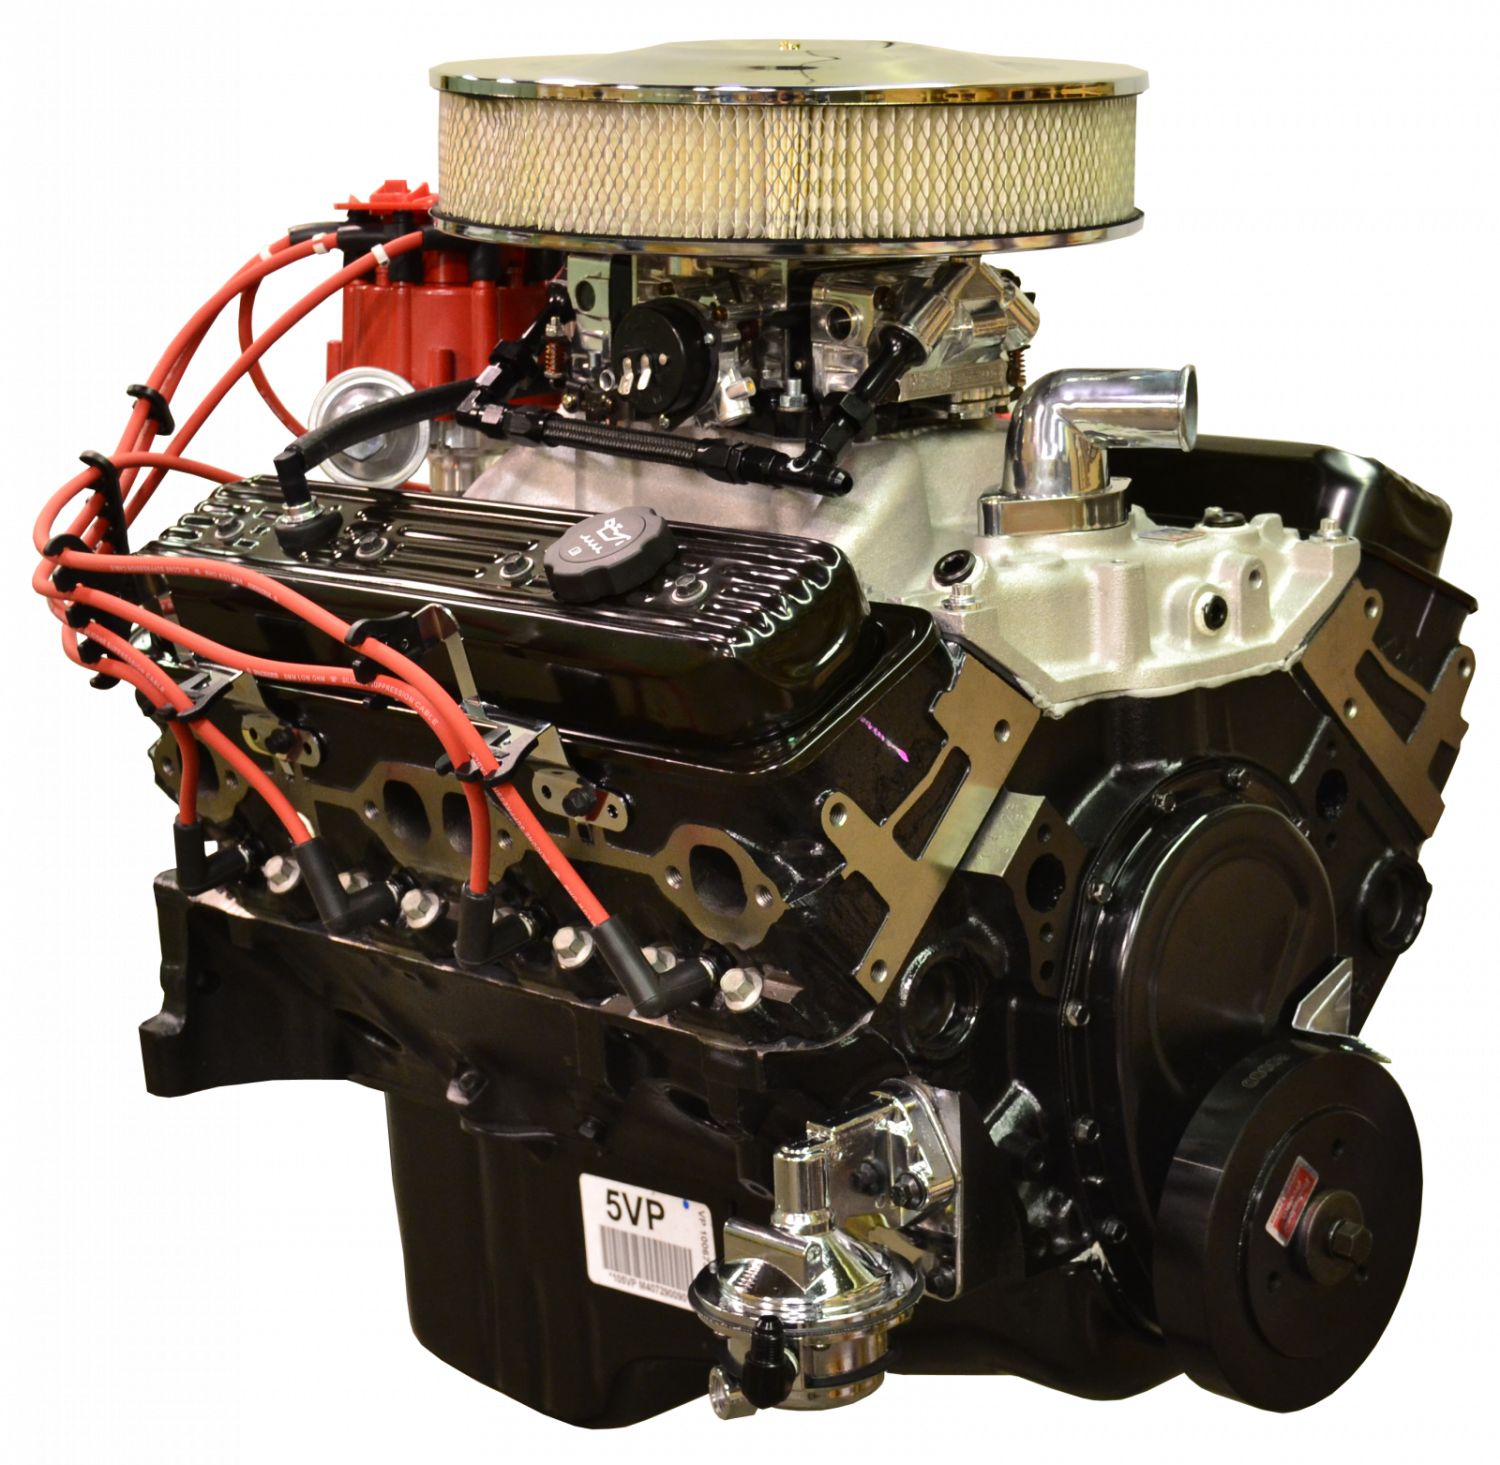 350 Chevy Engine Kit: 10067353 Pace Fuel Injected Chevy 350 350HP EFI Turnkey